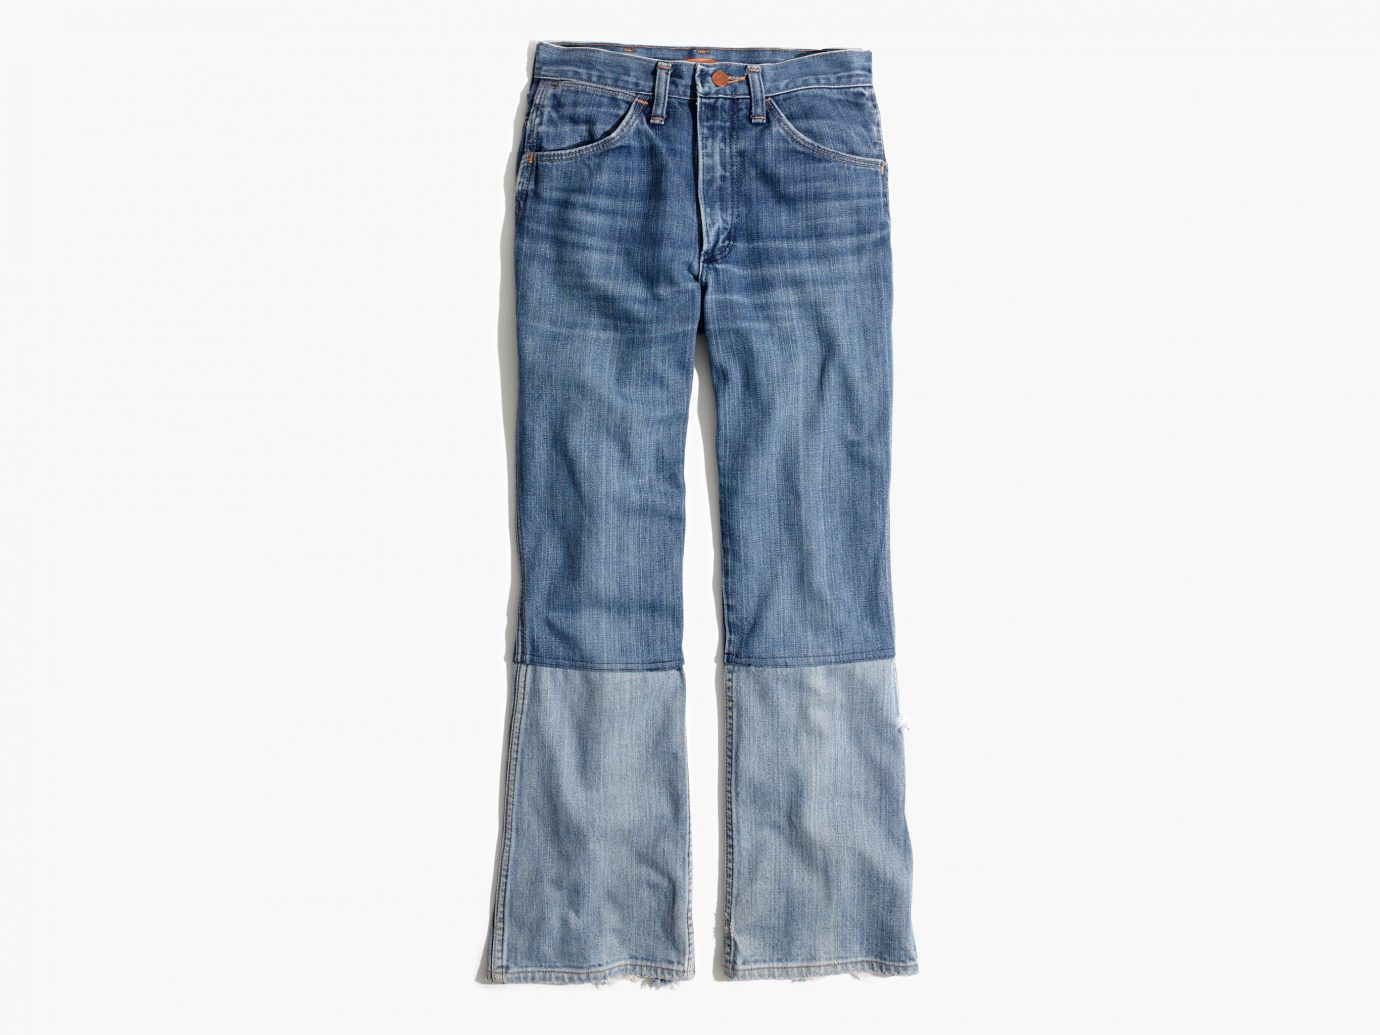 Style + Design clothing trouser denim jeans person wearing pocket trousers textile pattern abdomen material